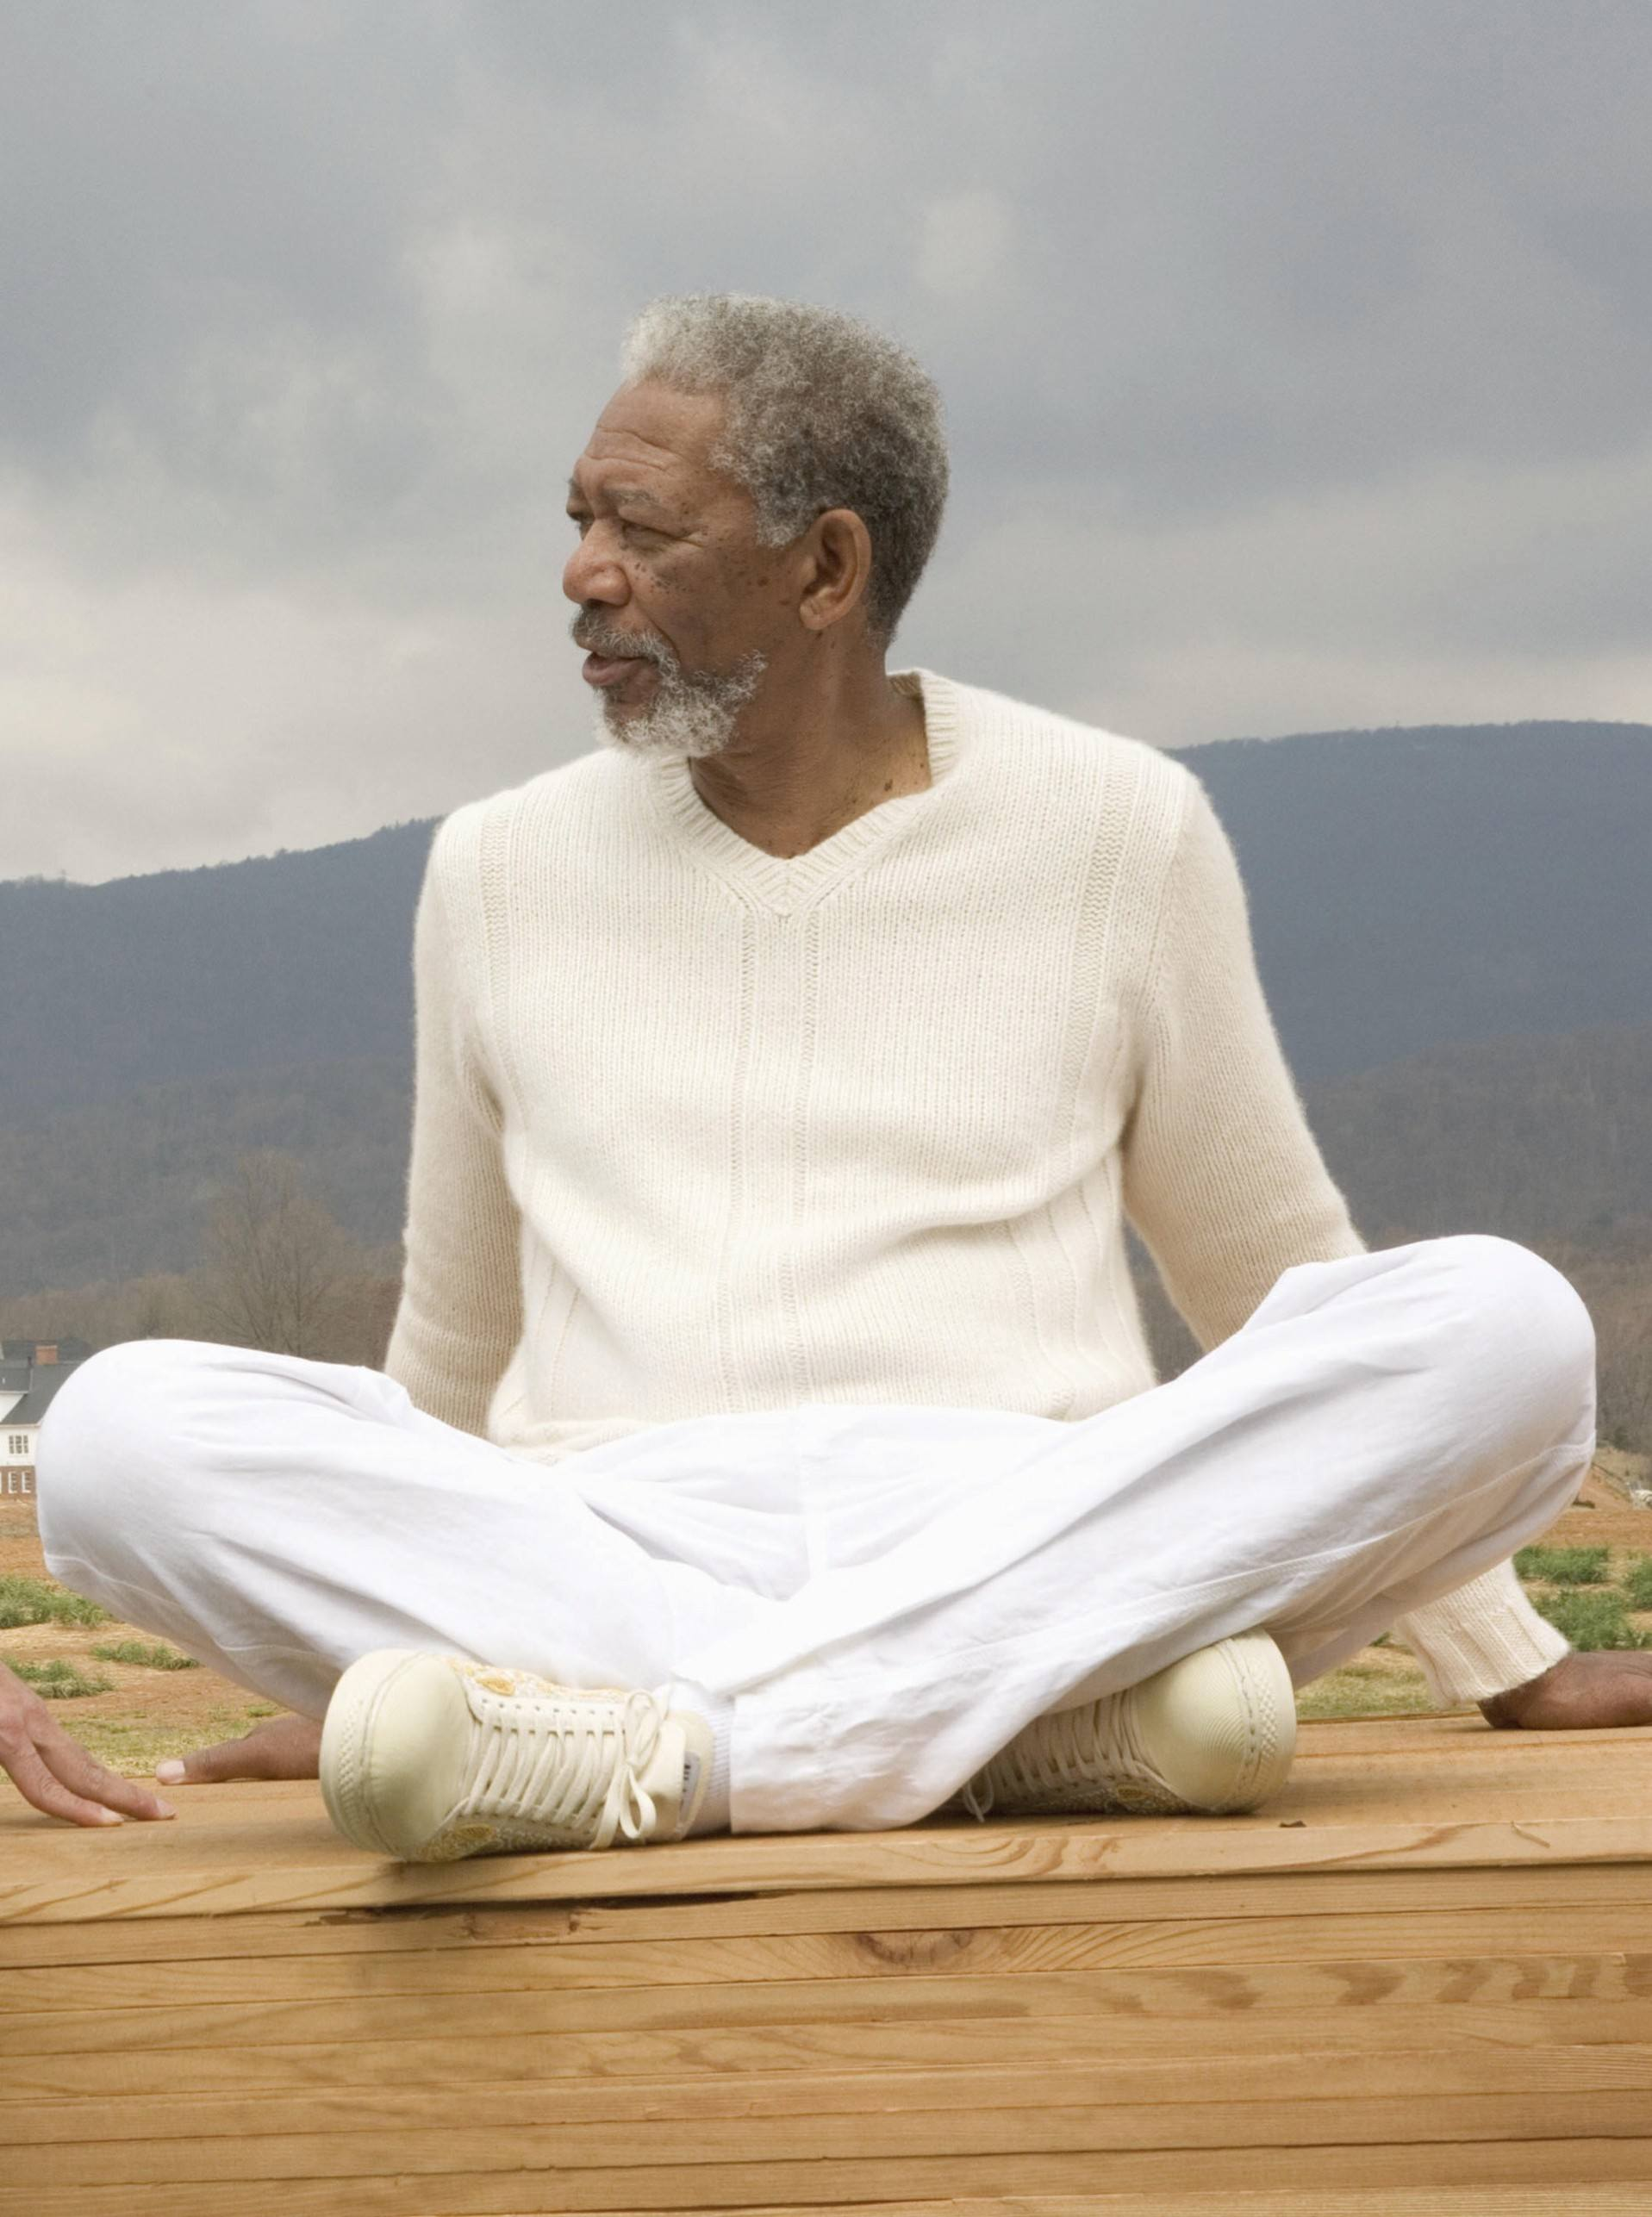 Evan Almighty morgan freeman 38580940 3890 2573 24 Things You Didn't Know About Bruce Almighty